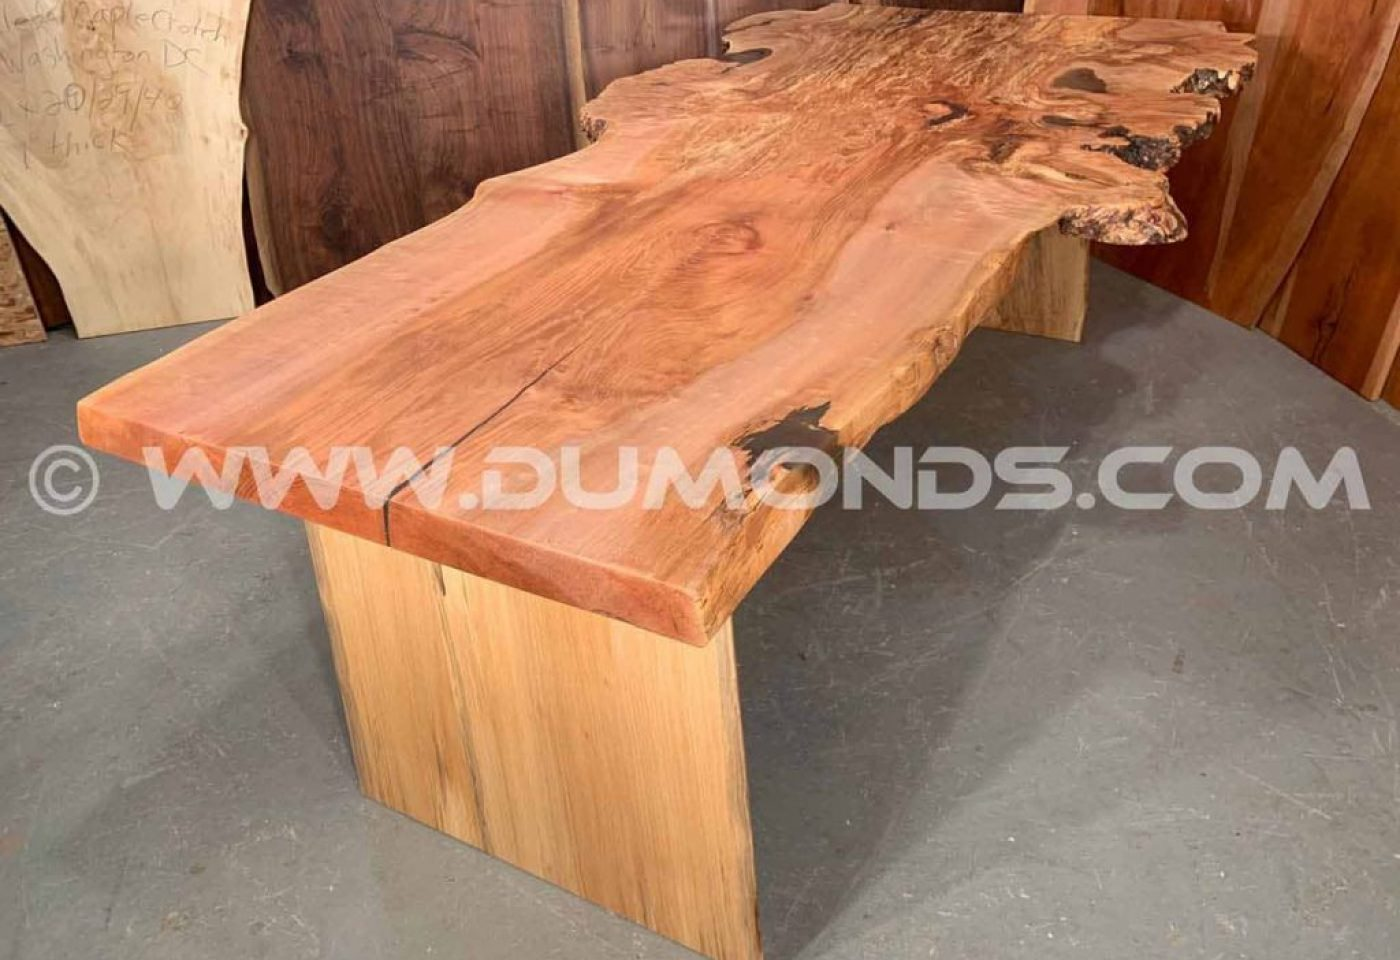 SPALTED MAPLE BURL LIVE EDGE SLAB TABLE WITH MAPLE BASE